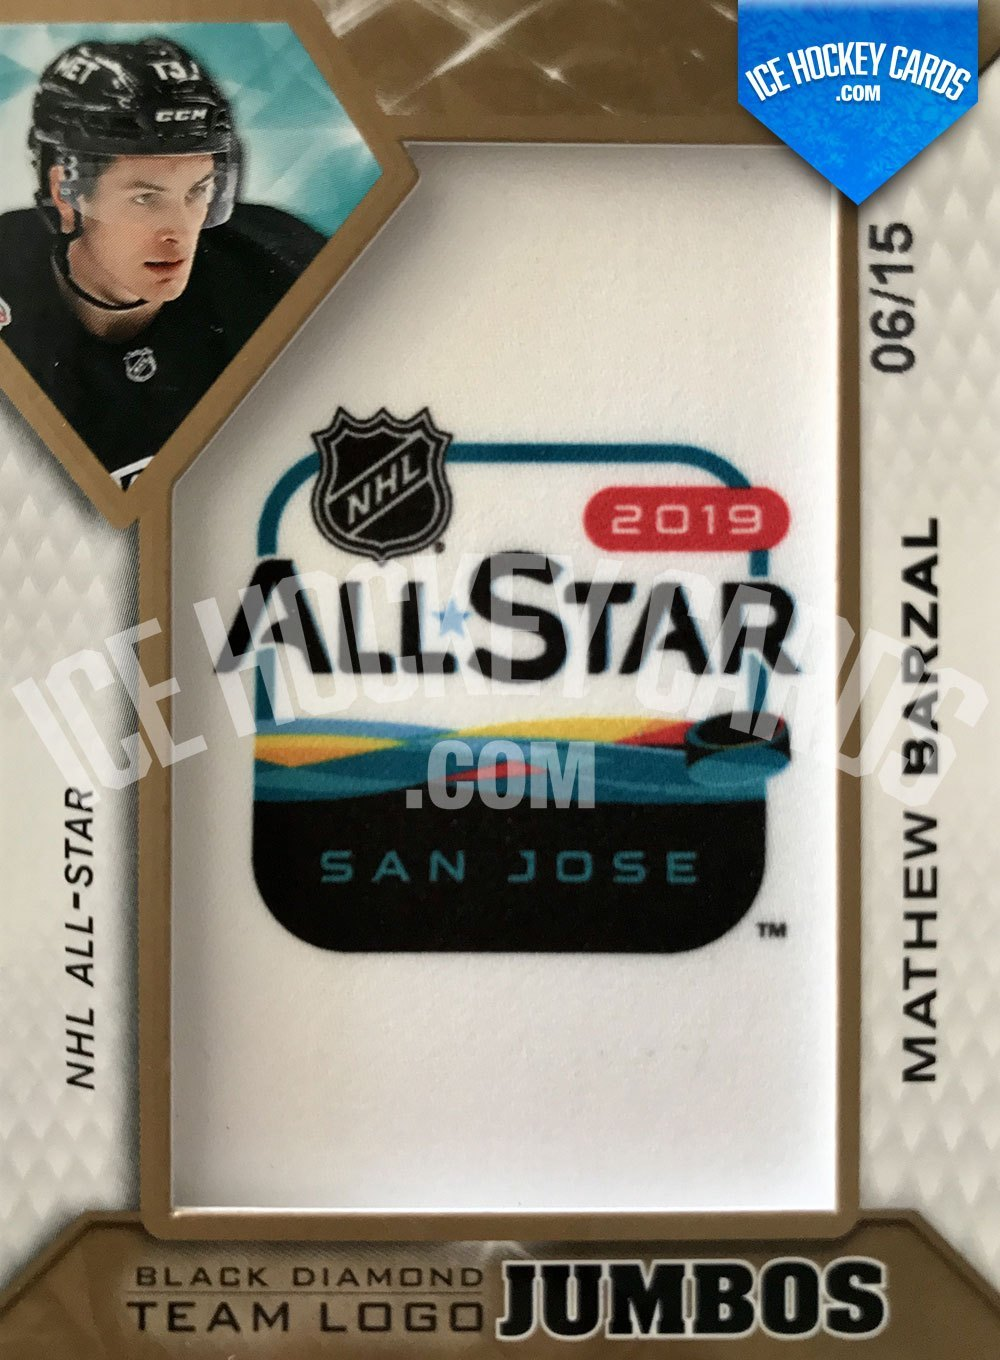 Upper Deck - Black Diamond 2019-20 - Mathew Barzal All-Star Team Logo Jumbos up to 15 cards RARE